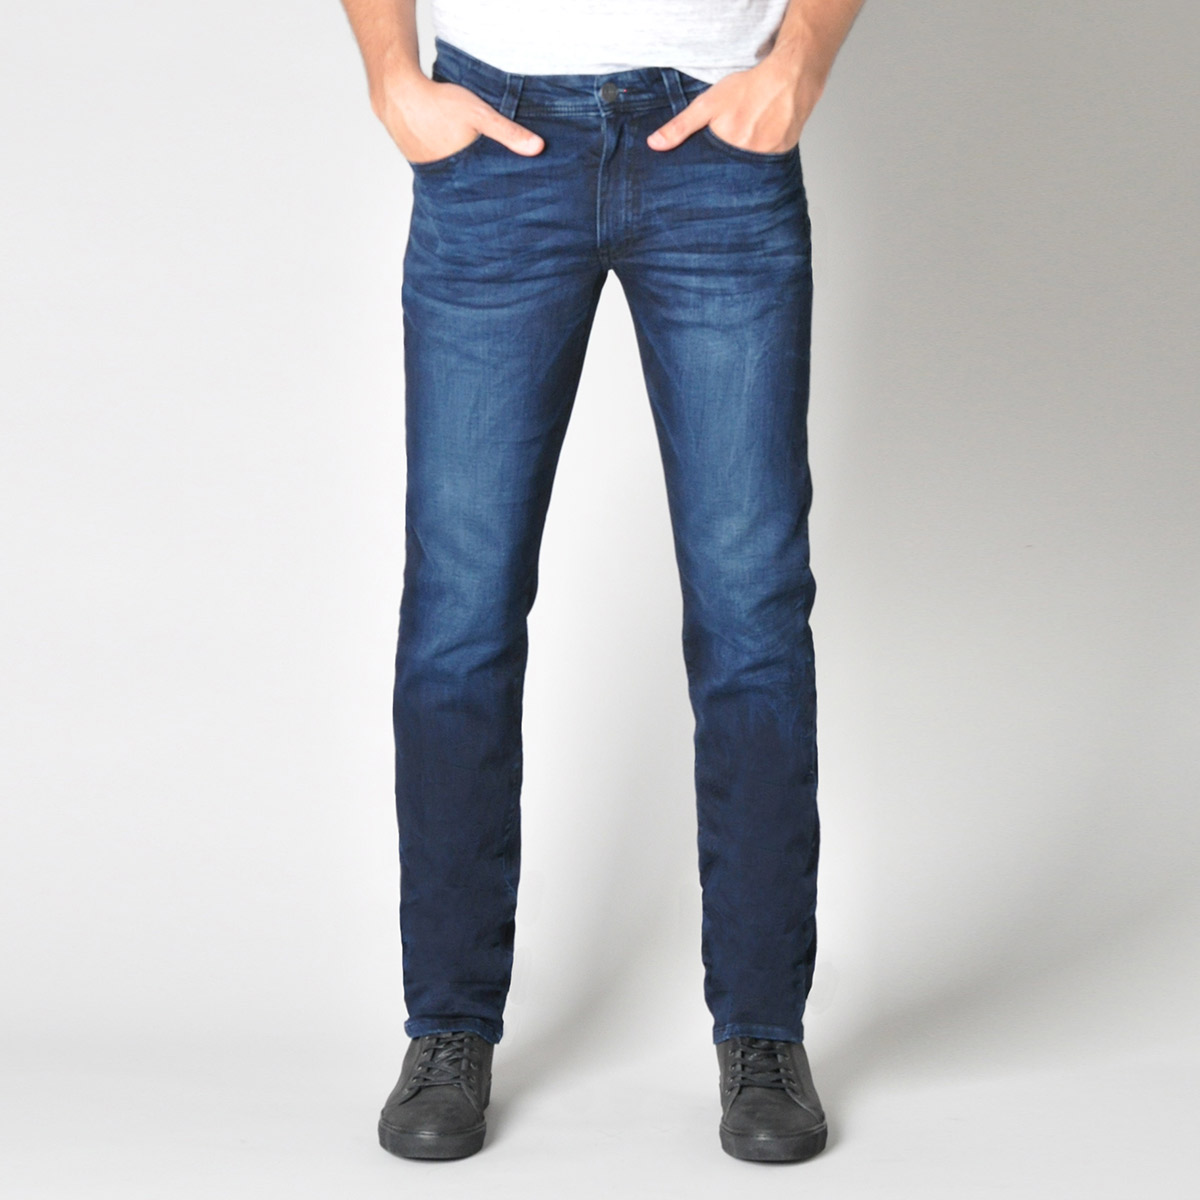 Fidelity Jeans Jimmy Slim Tailored Jean Mens Apparel at ...